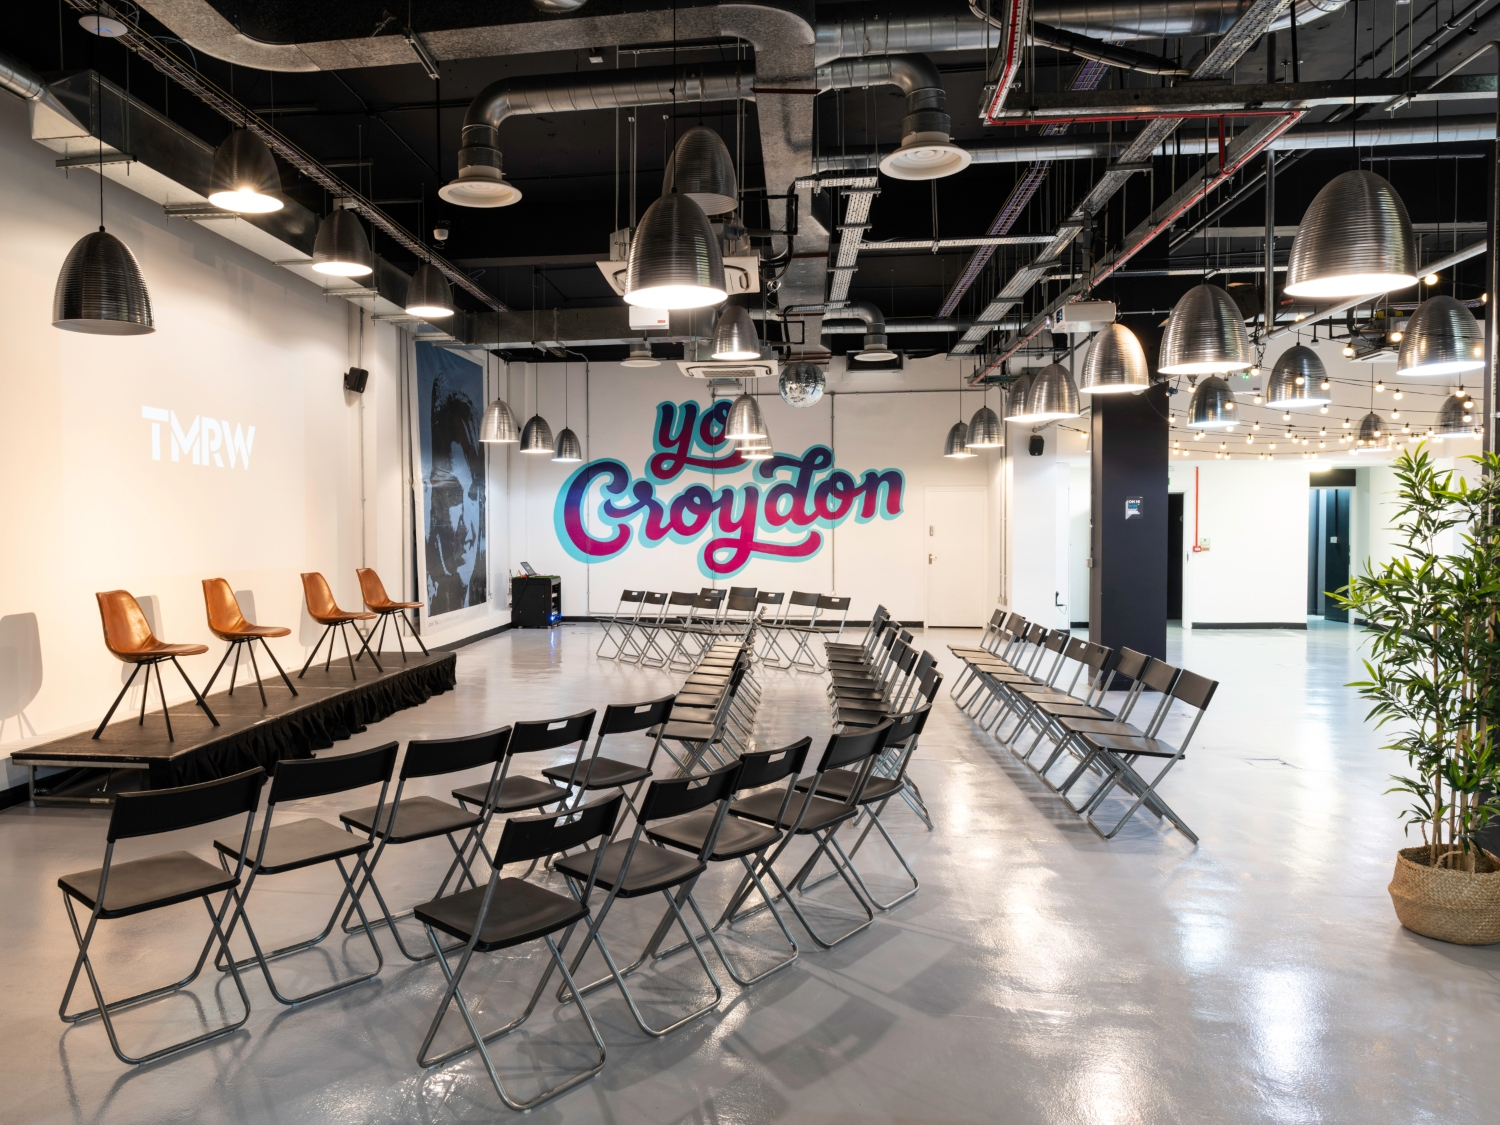 Large event space with Yo Croydon mural and seminar layout